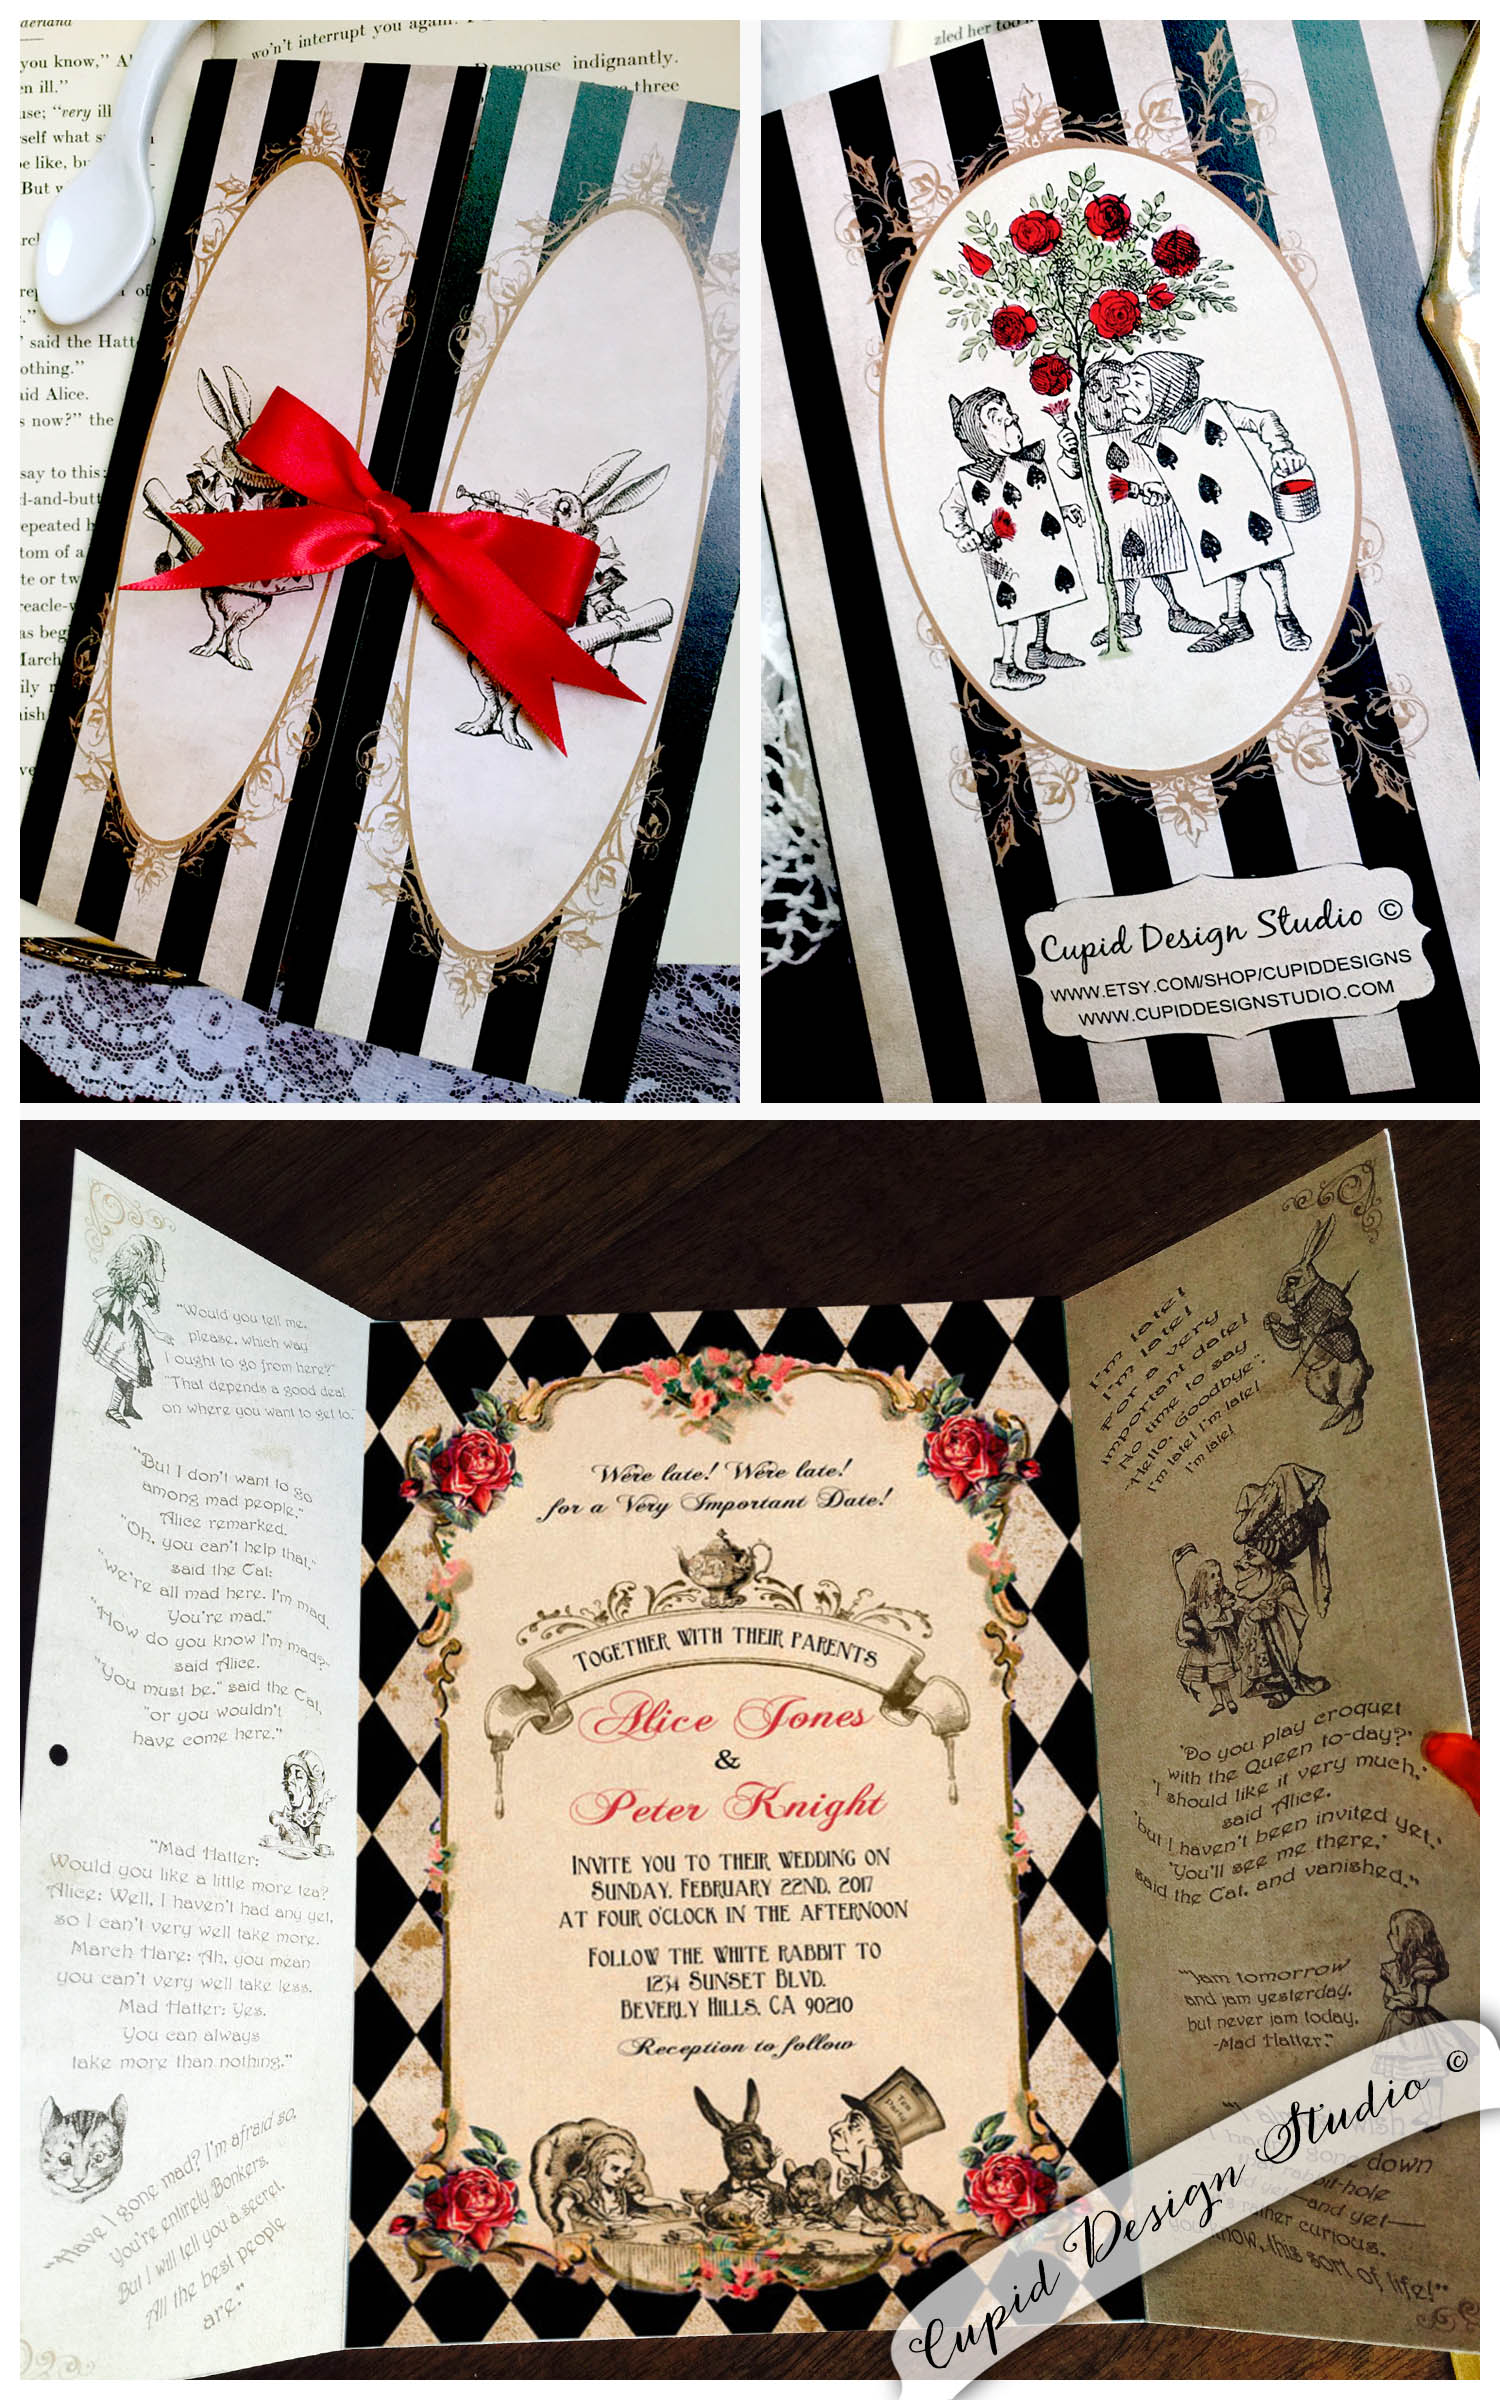 Alice in wonderland gatefold invitations Mad hatter tea party